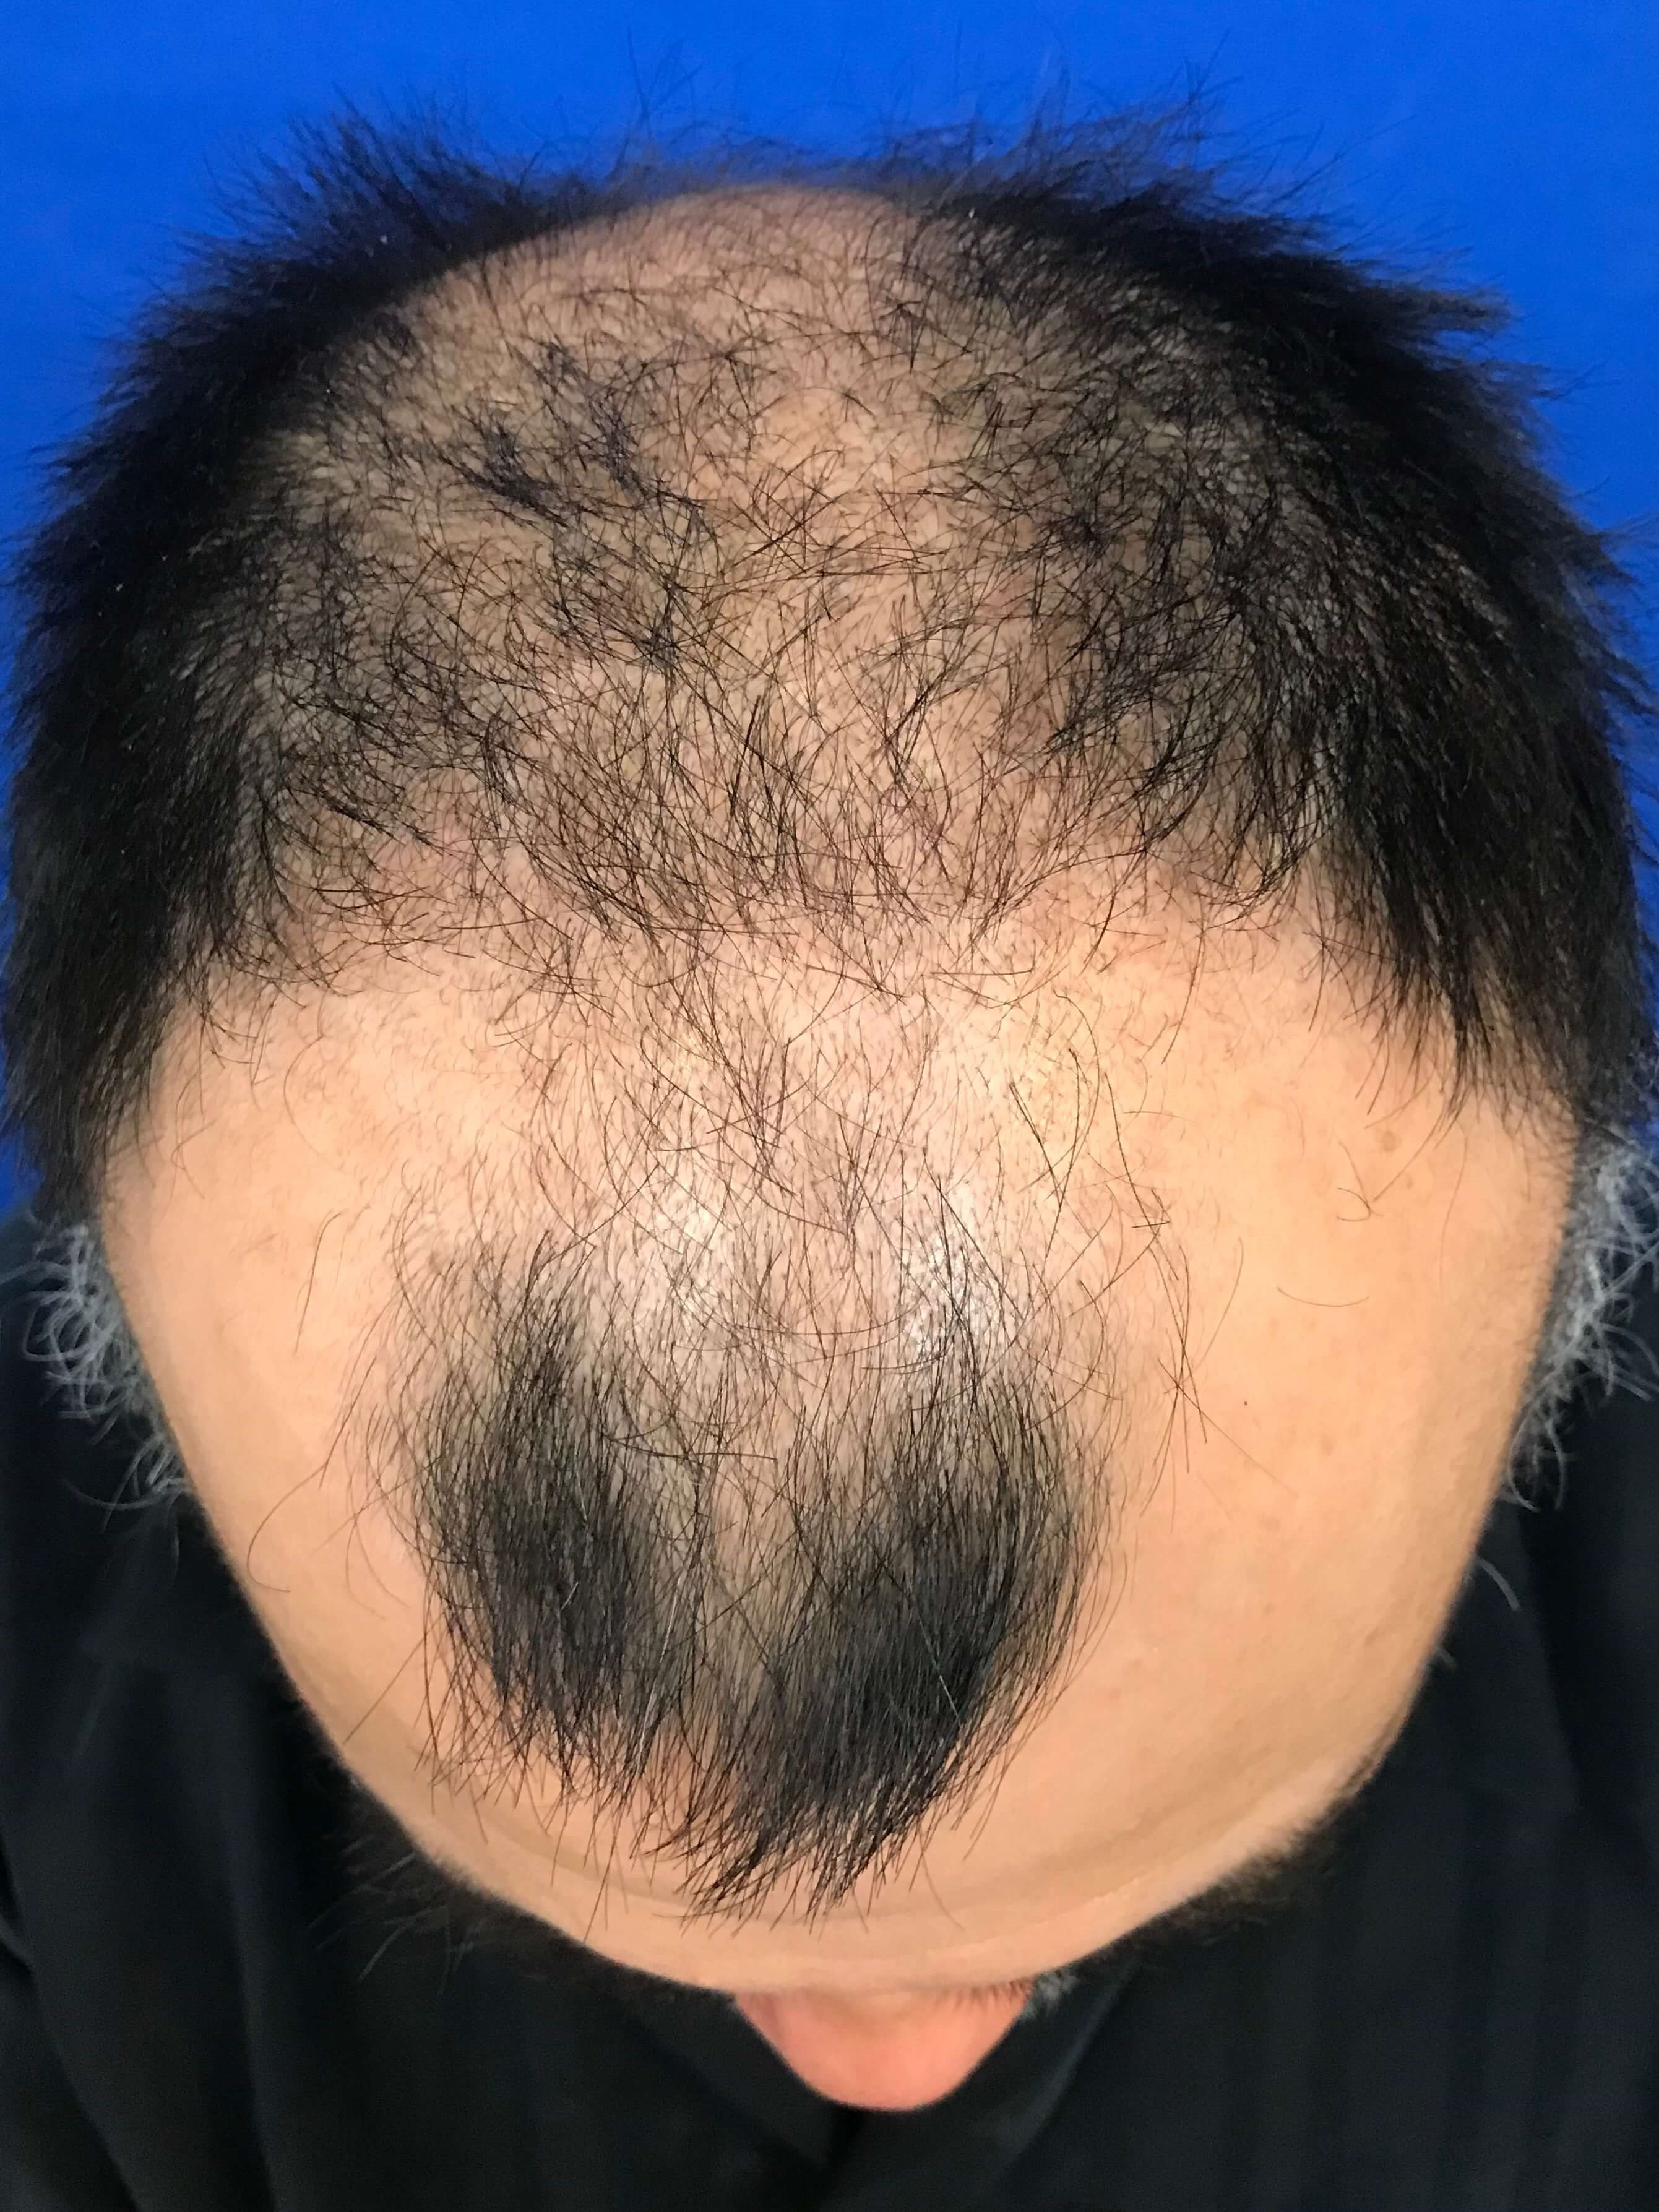 Hair Transplant Before & After Before Hair Transplant